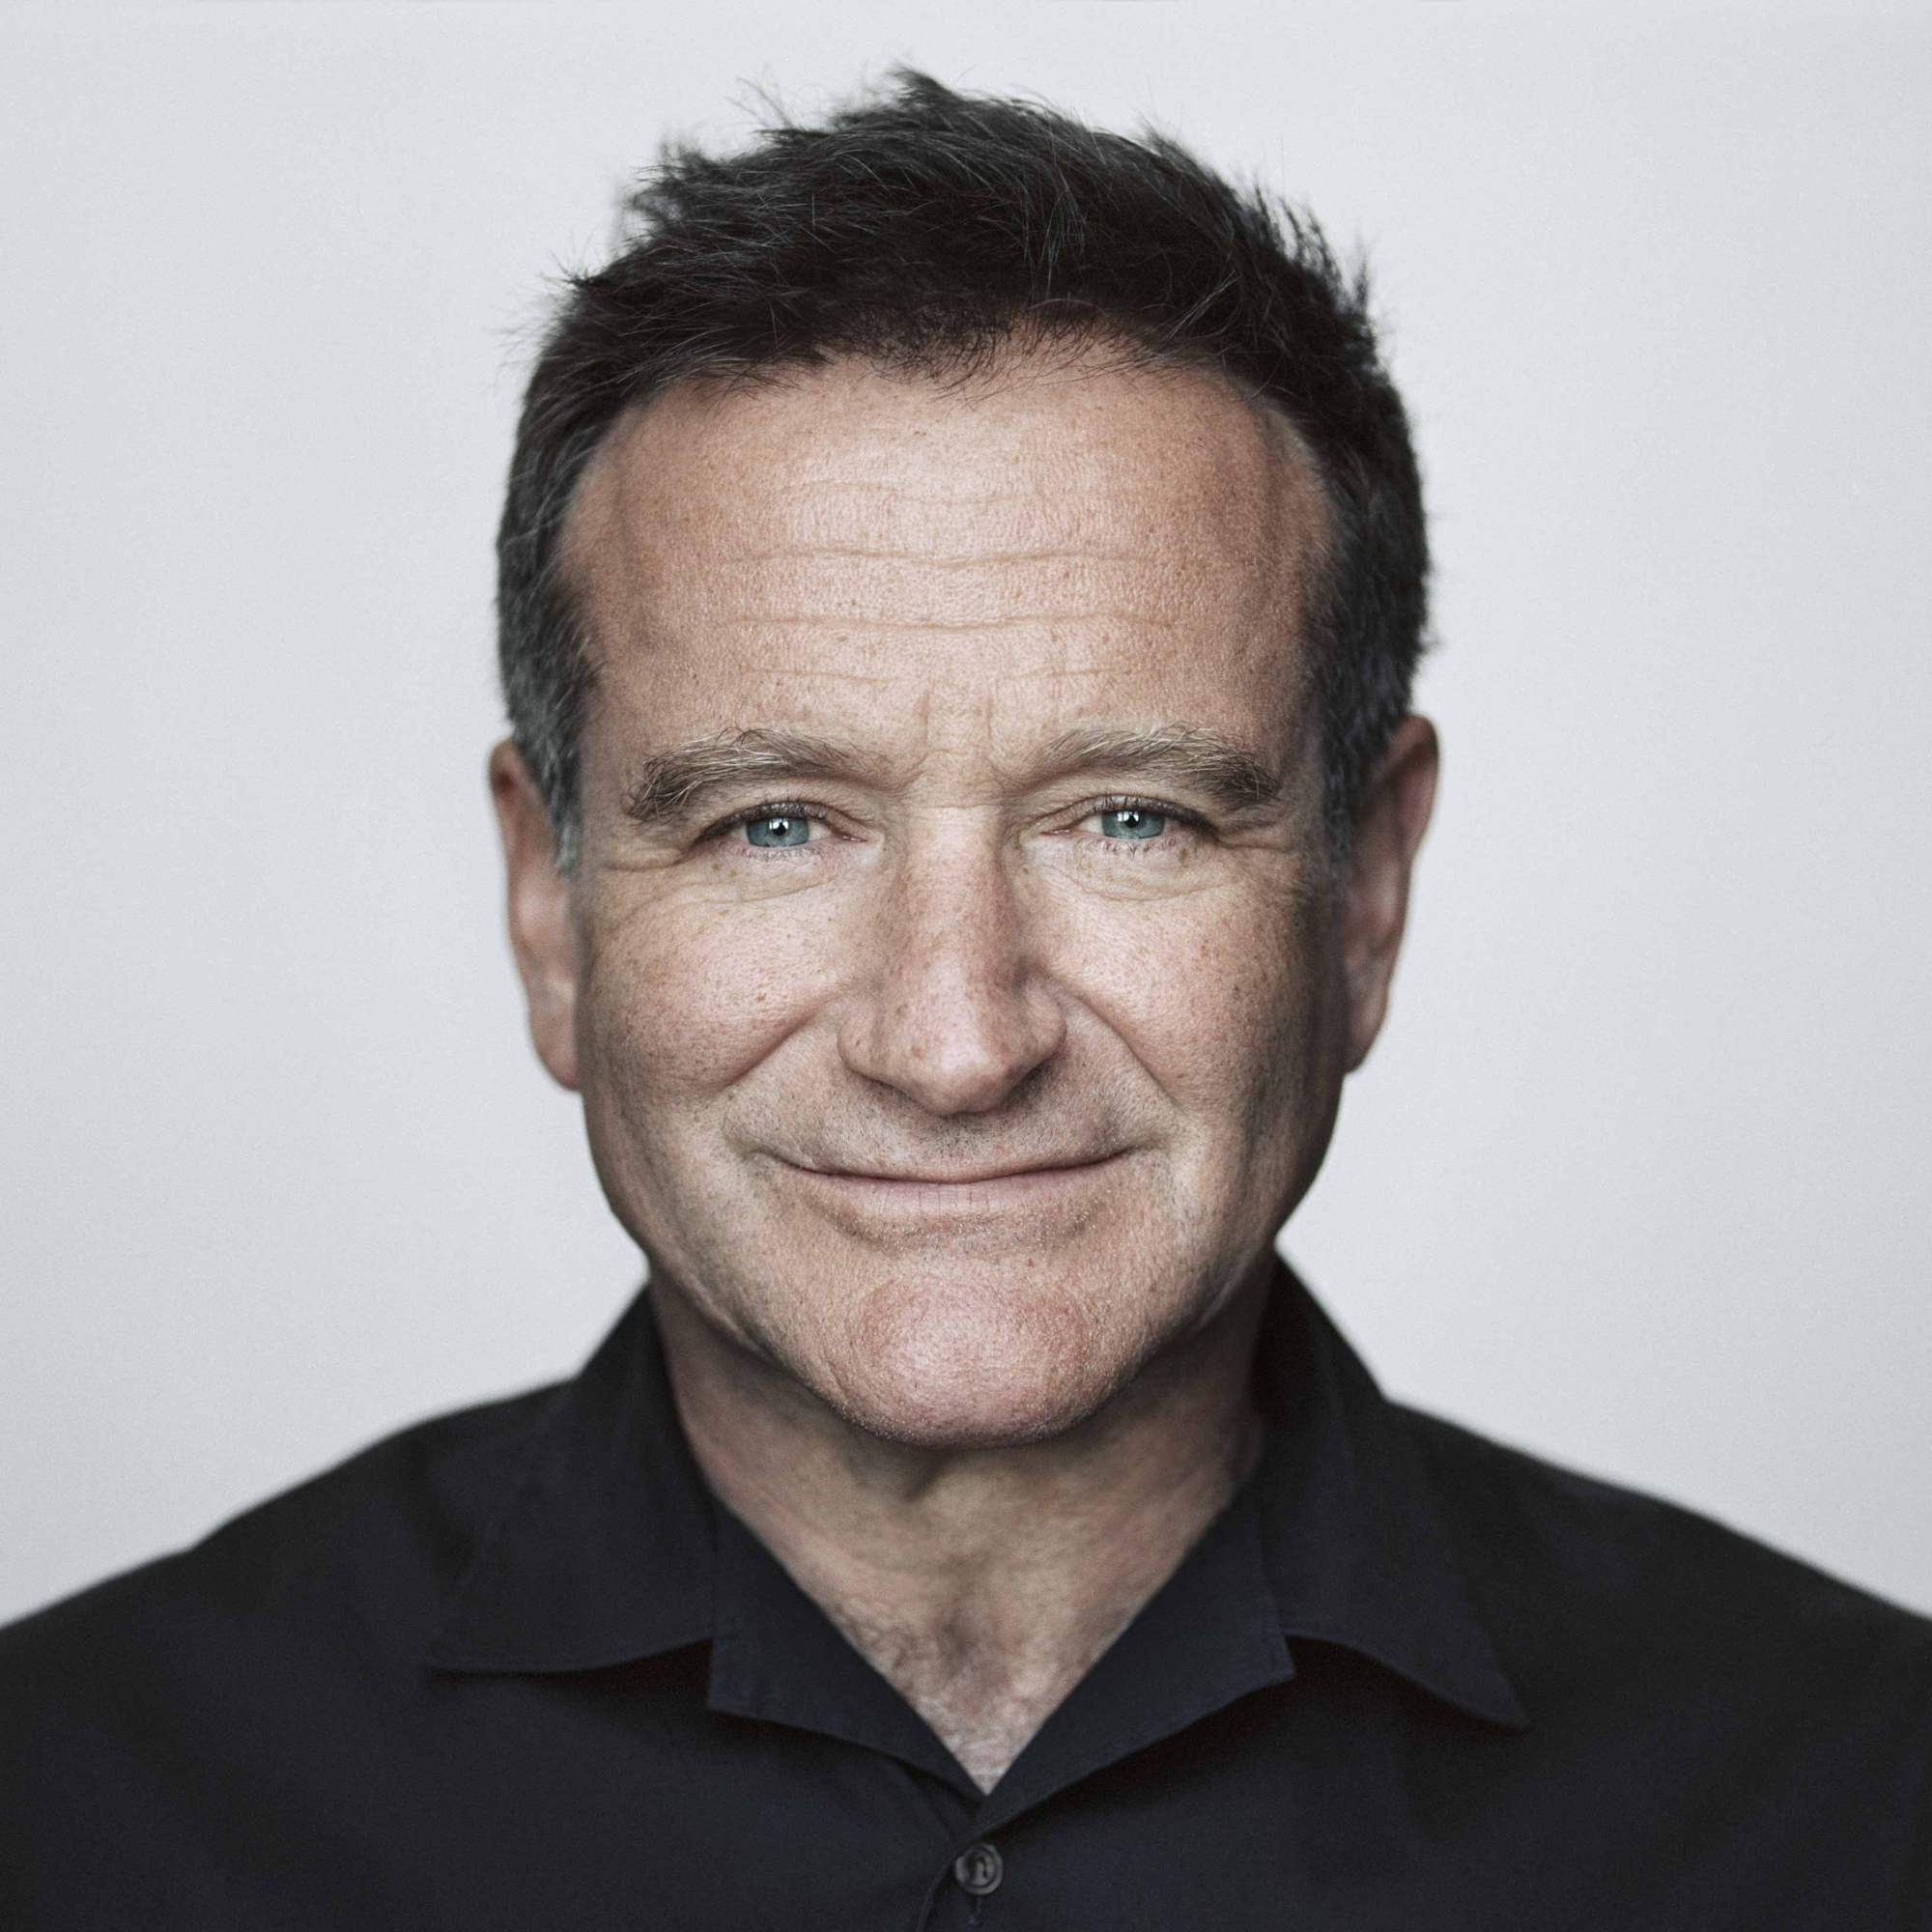 2014: ROBIN WILLIAMS